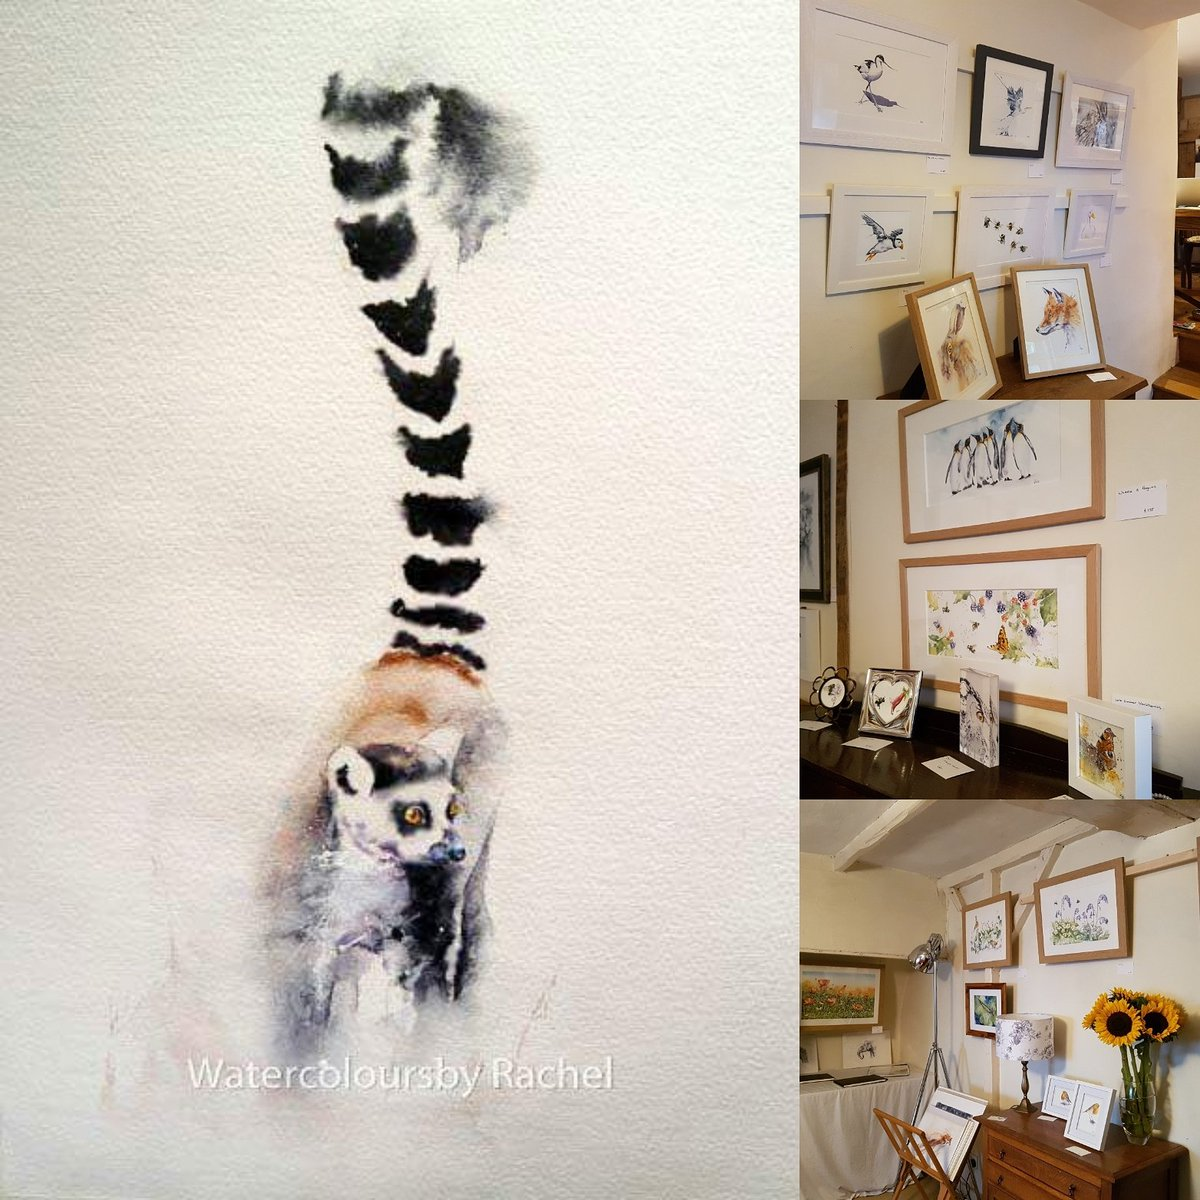 Walls rehung all ready for Day 2 #devonopenstudios #watercolour #wildlife #BigArtBoost #wildlifeartist #painting #art #devon #wildflowers <br>http://pic.twitter.com/uE7jquOegA